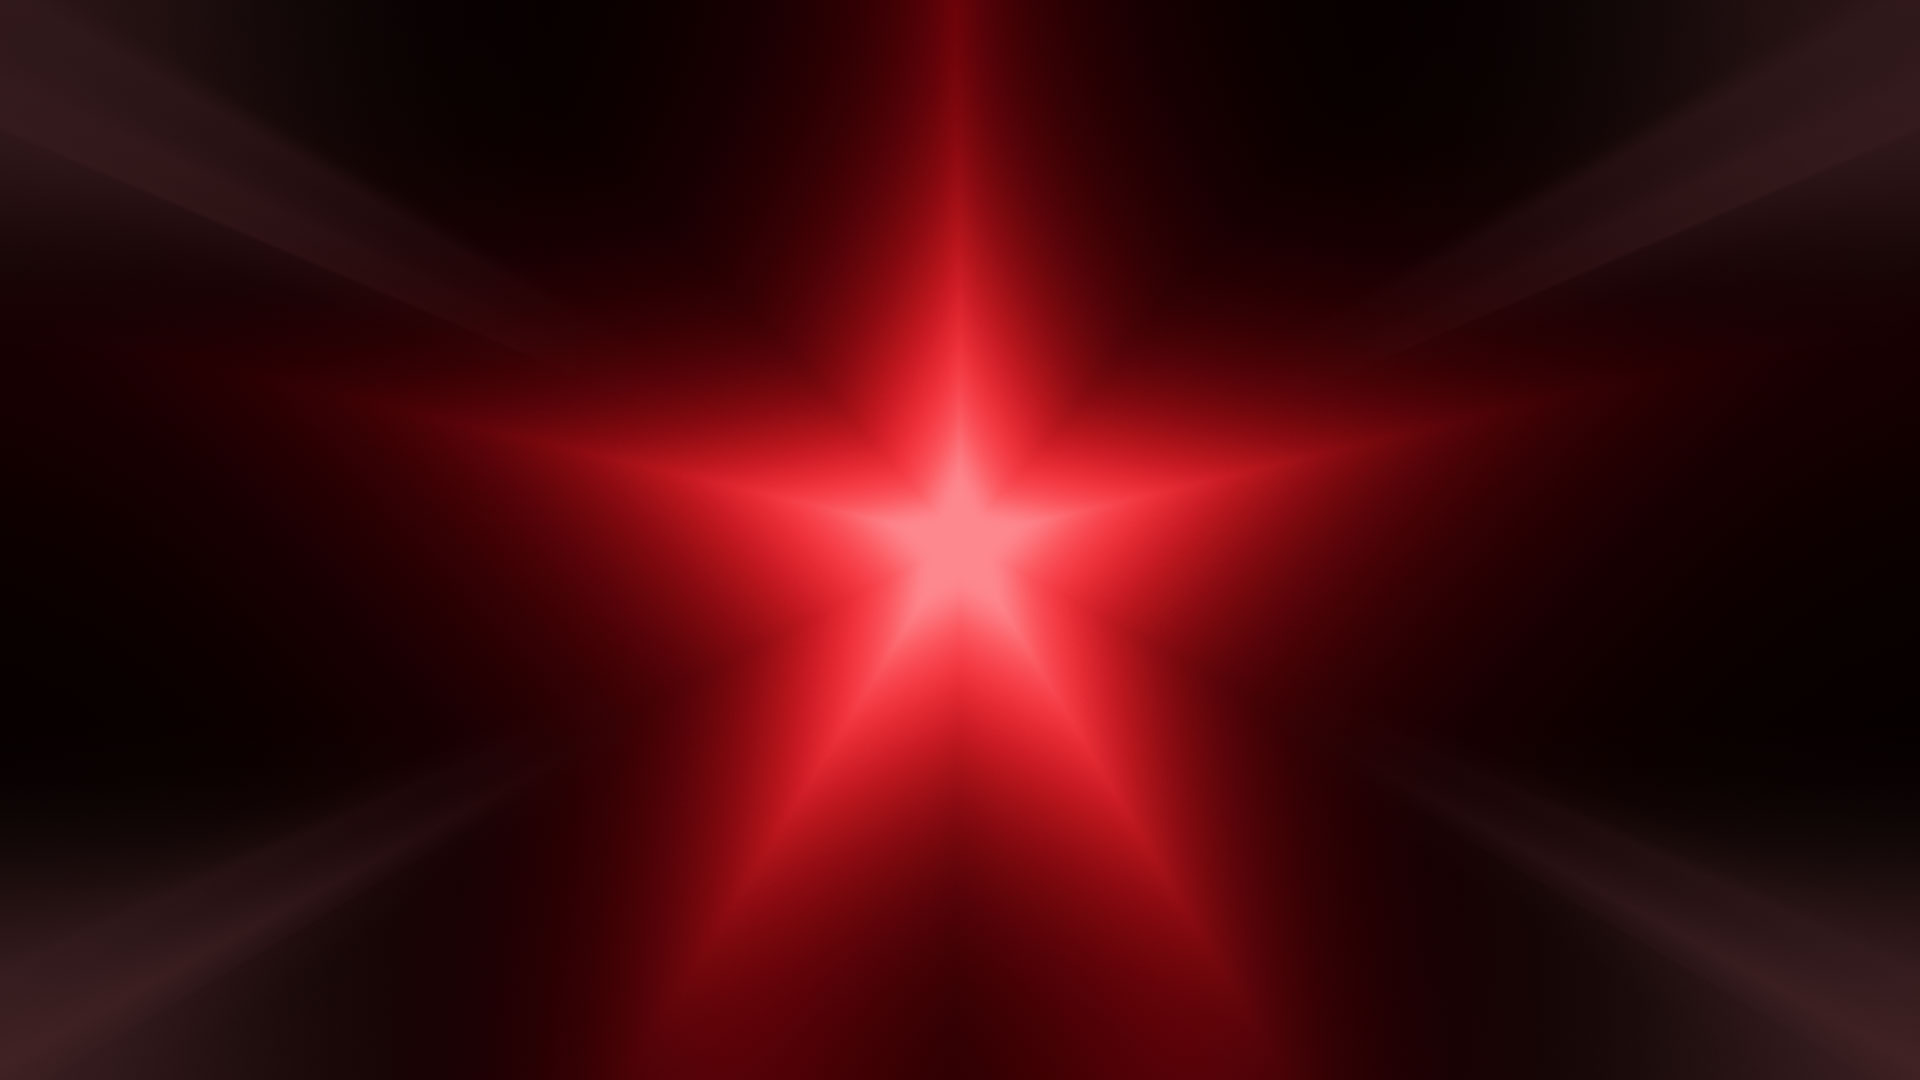 red star background - photo #15